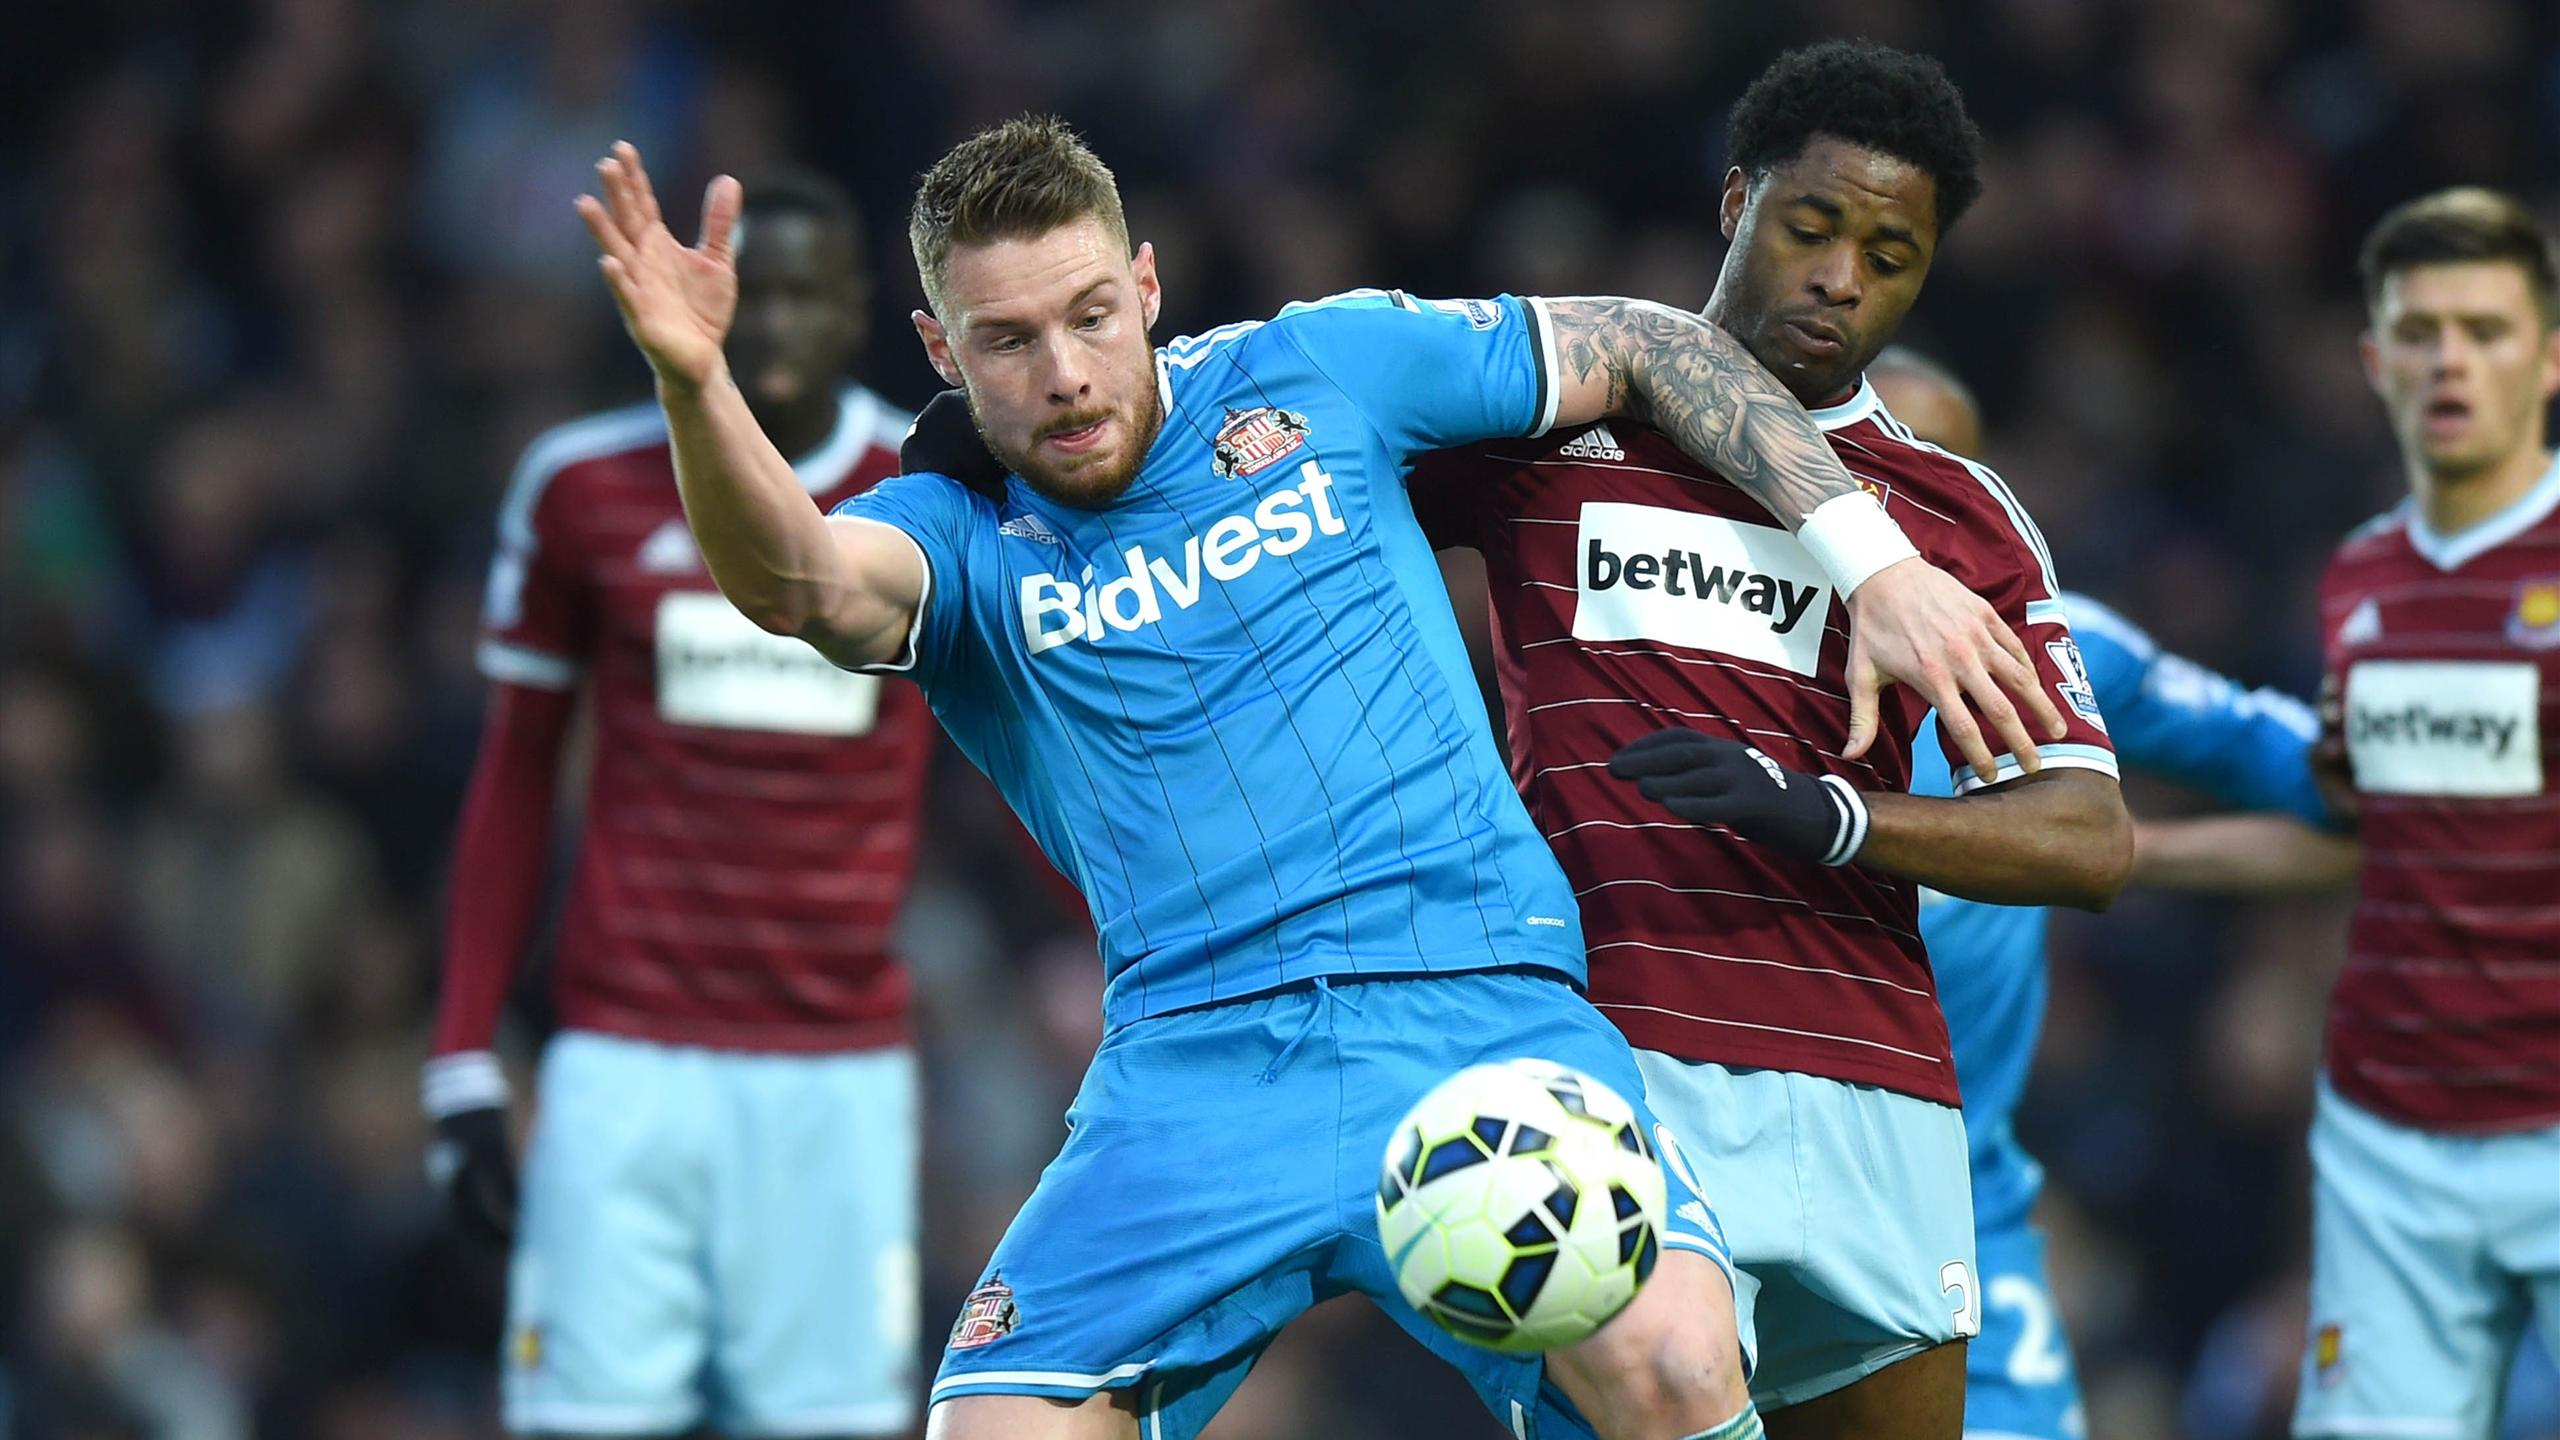 Video: West Ham United vs Sunderland